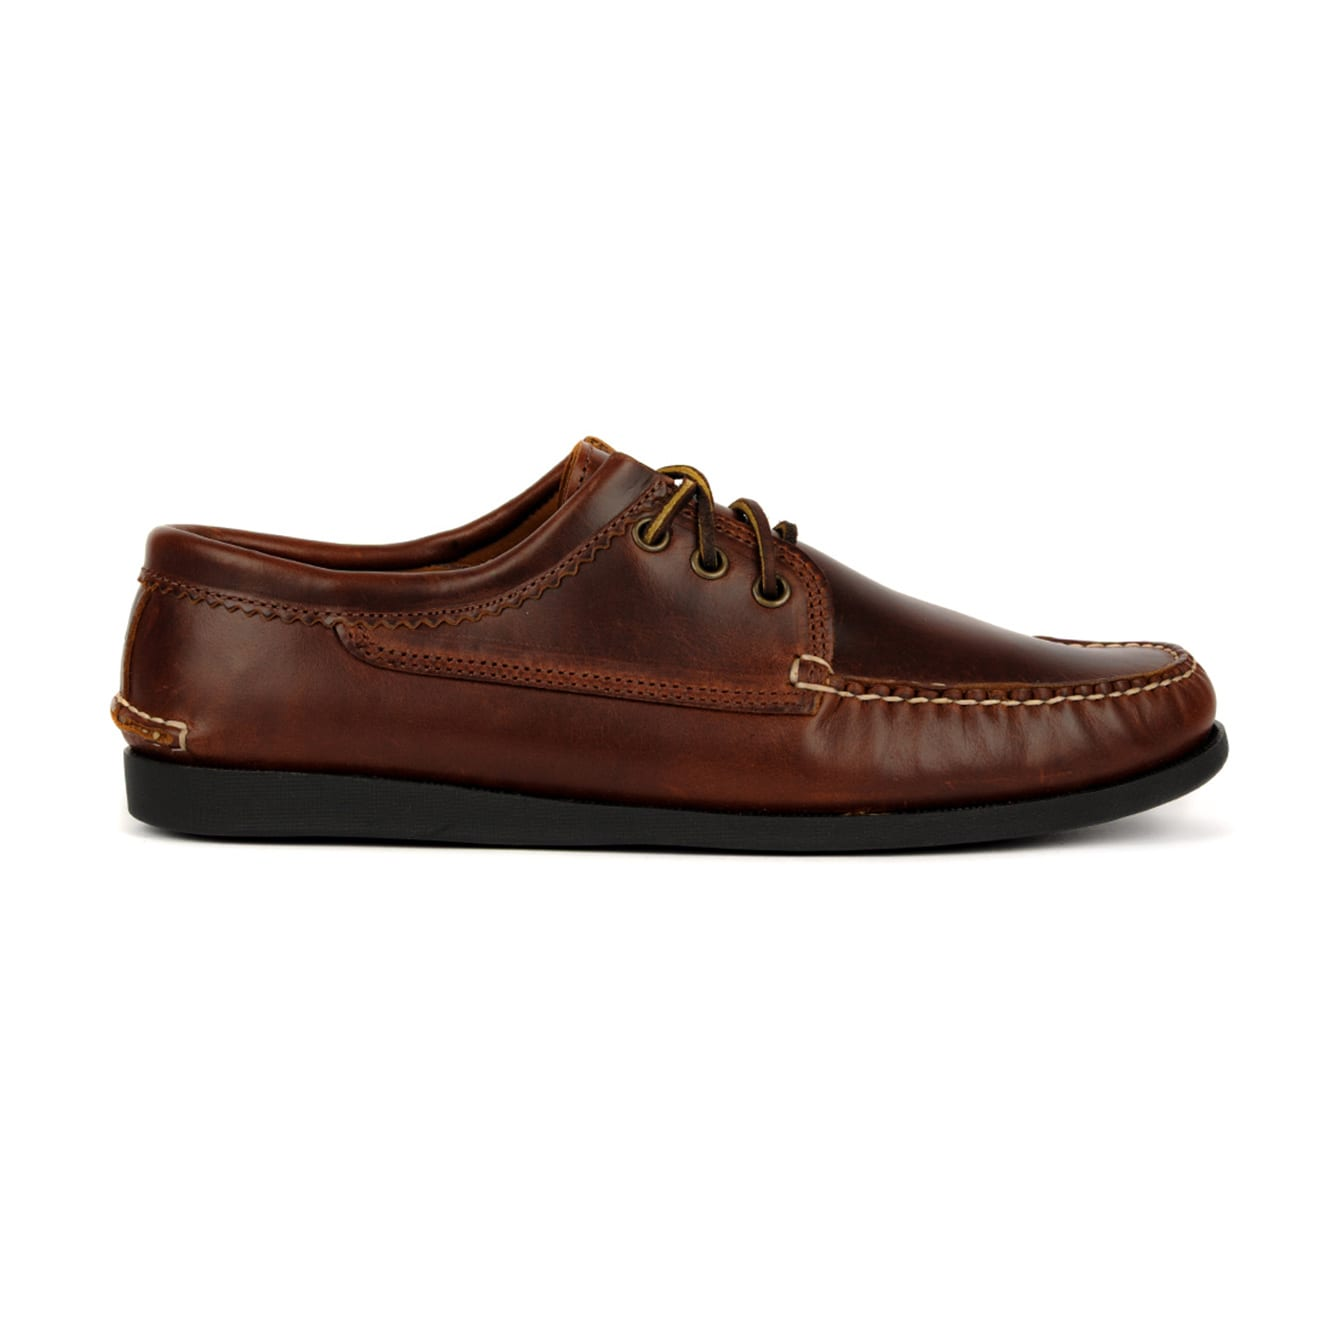 Quoddy Blucher Moccasin Shoe Chromexcel Brown